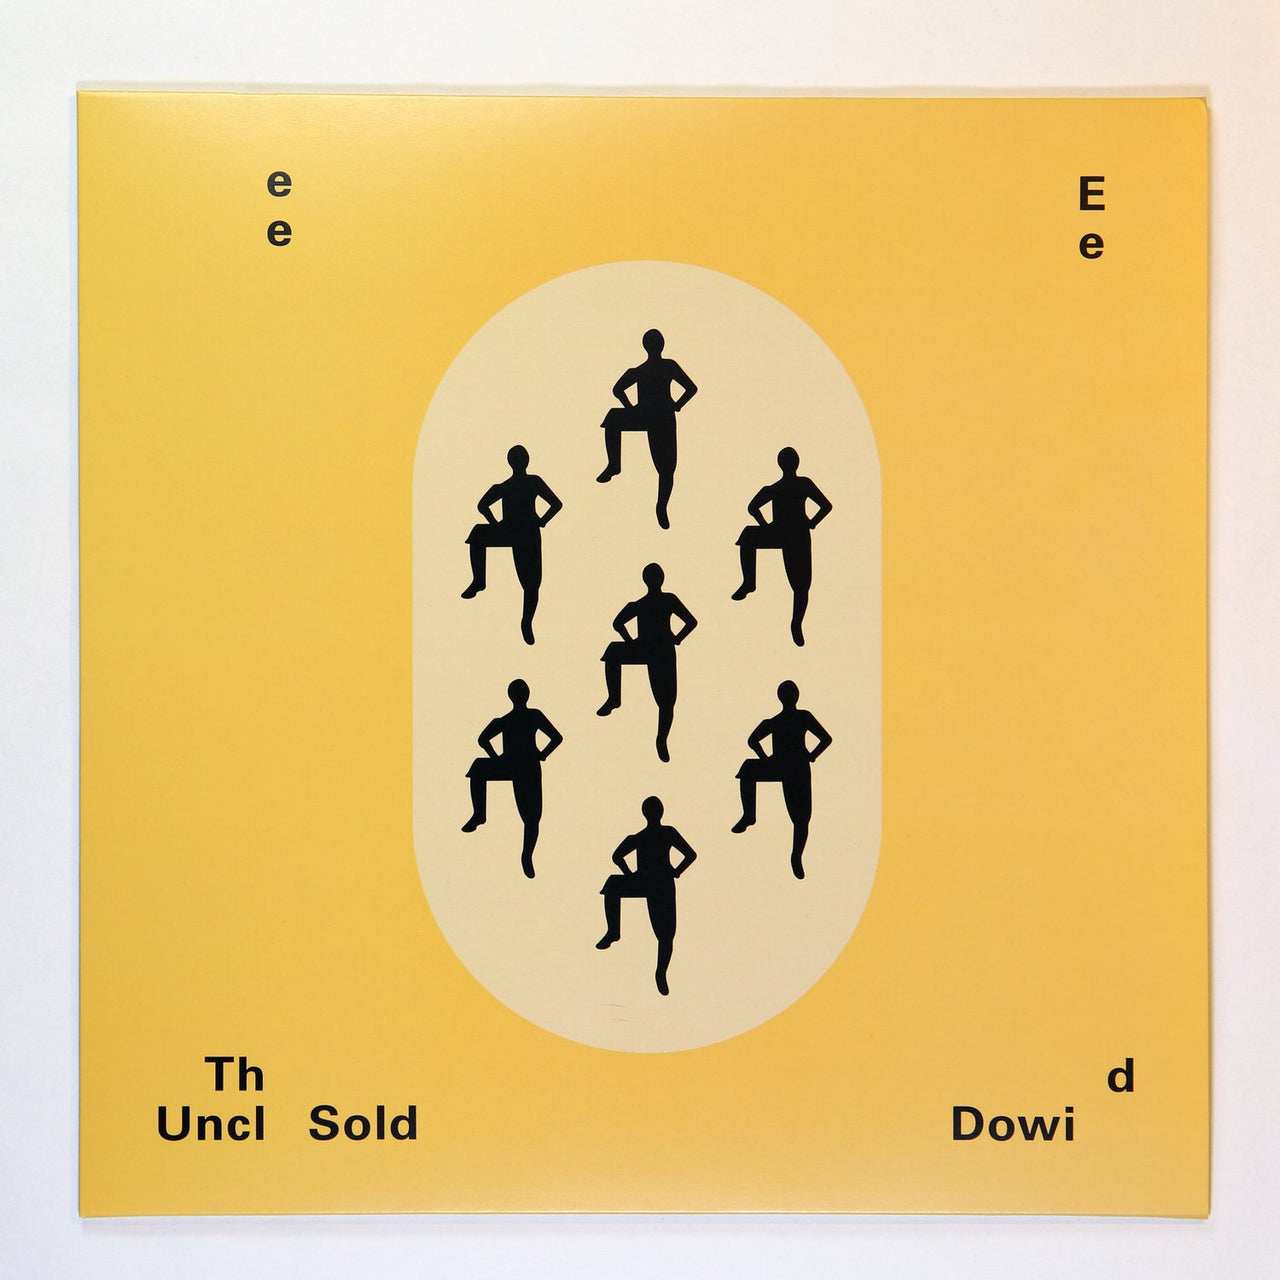 Ed Dowie - The Uncle Sold LP - Braw Wee Emporium